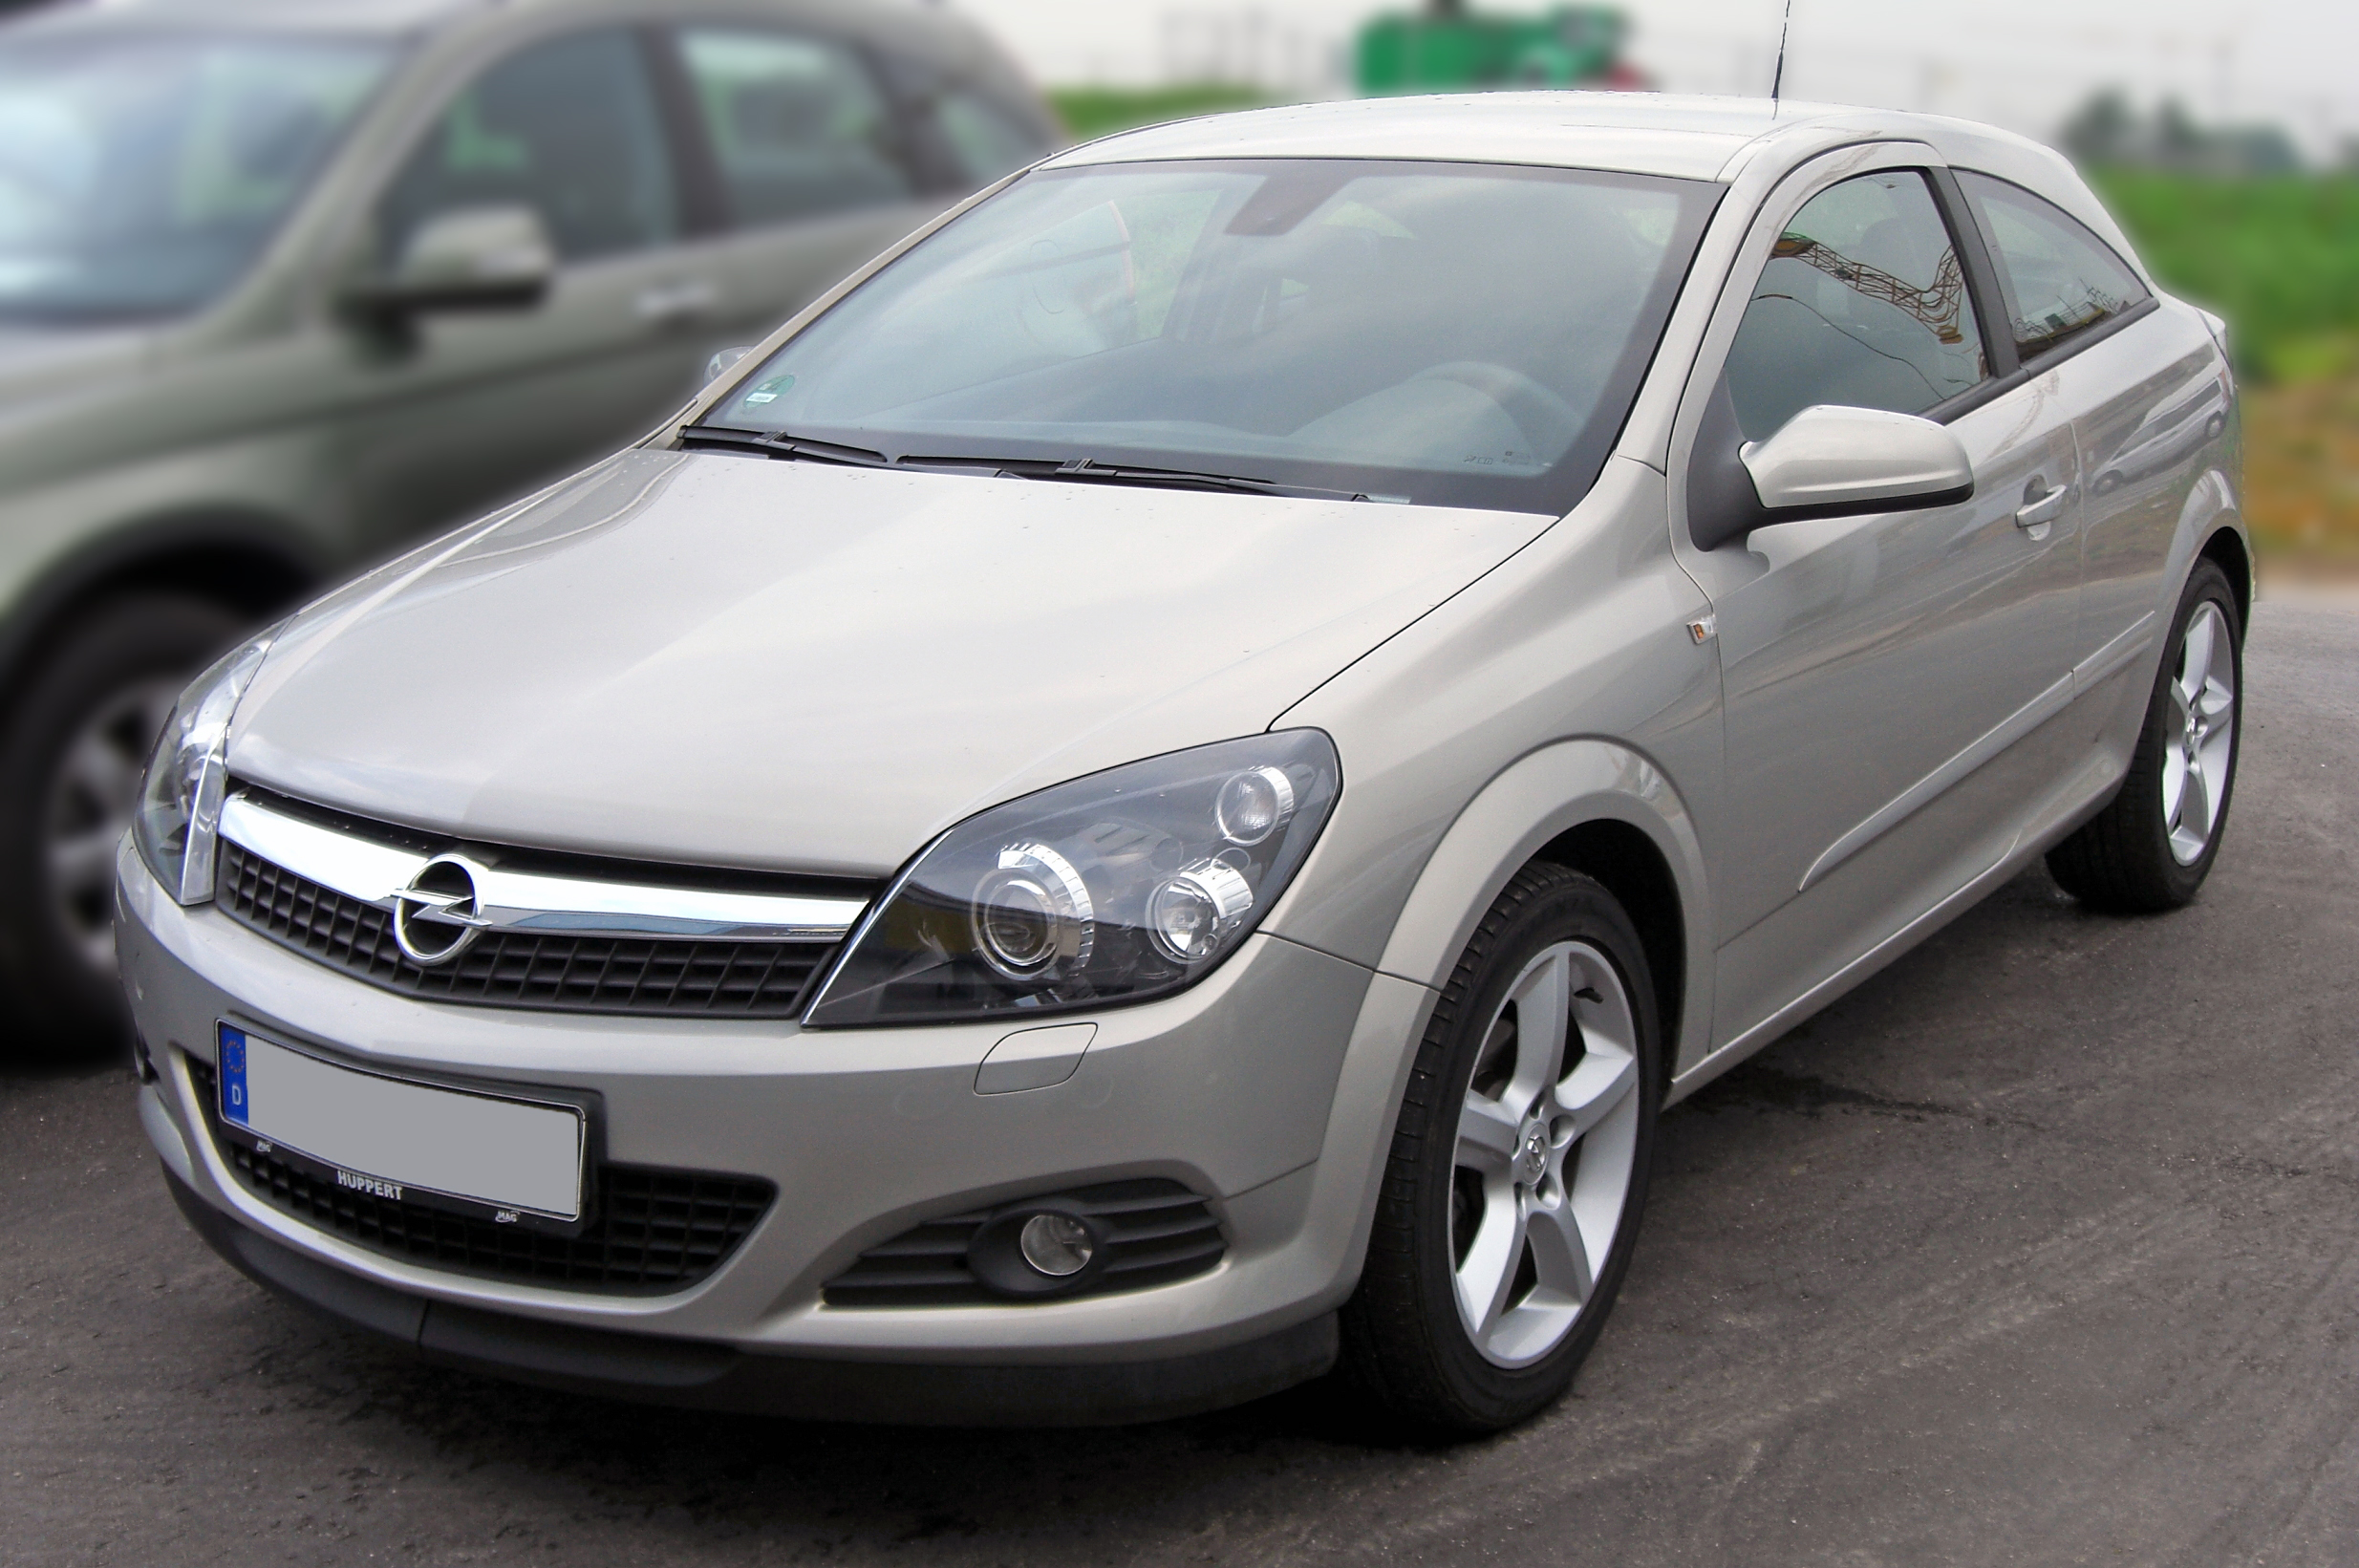 File:Opel Astra H GTC Facelift 20090507 front.jpg ...